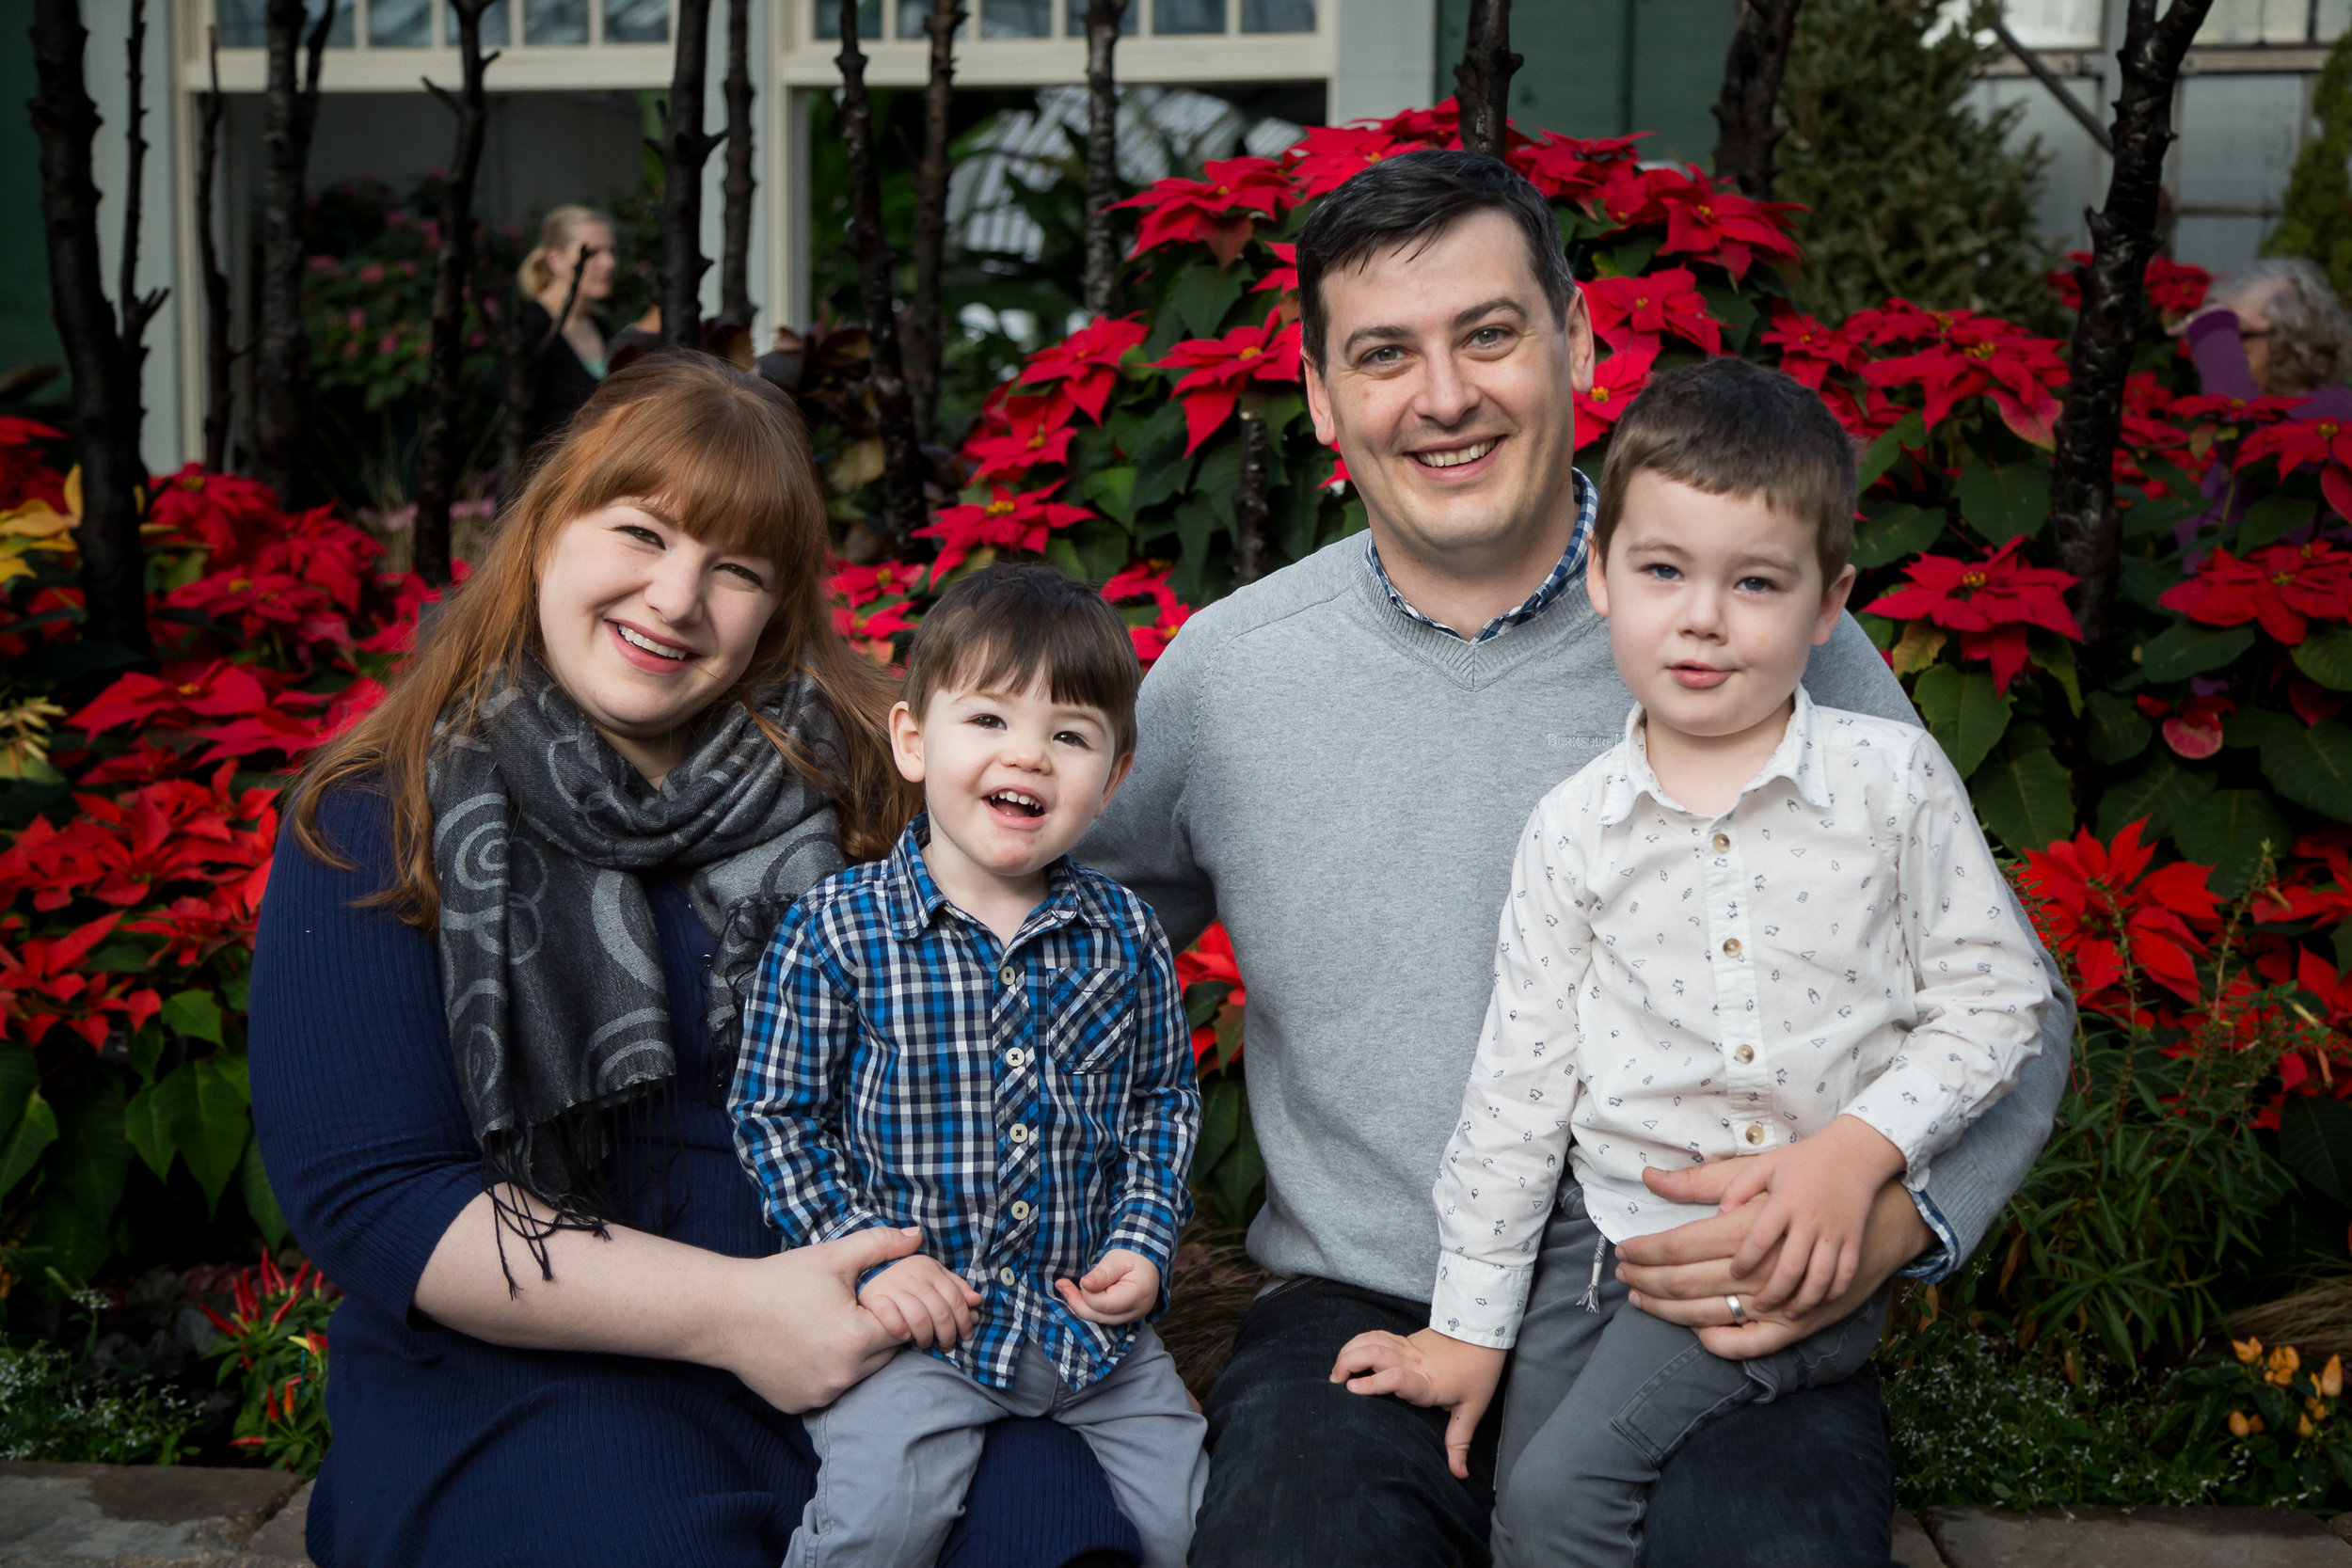 Chicago_Photographer_Garfield_Park_Conservatory_Family_Holiday-1.jpg